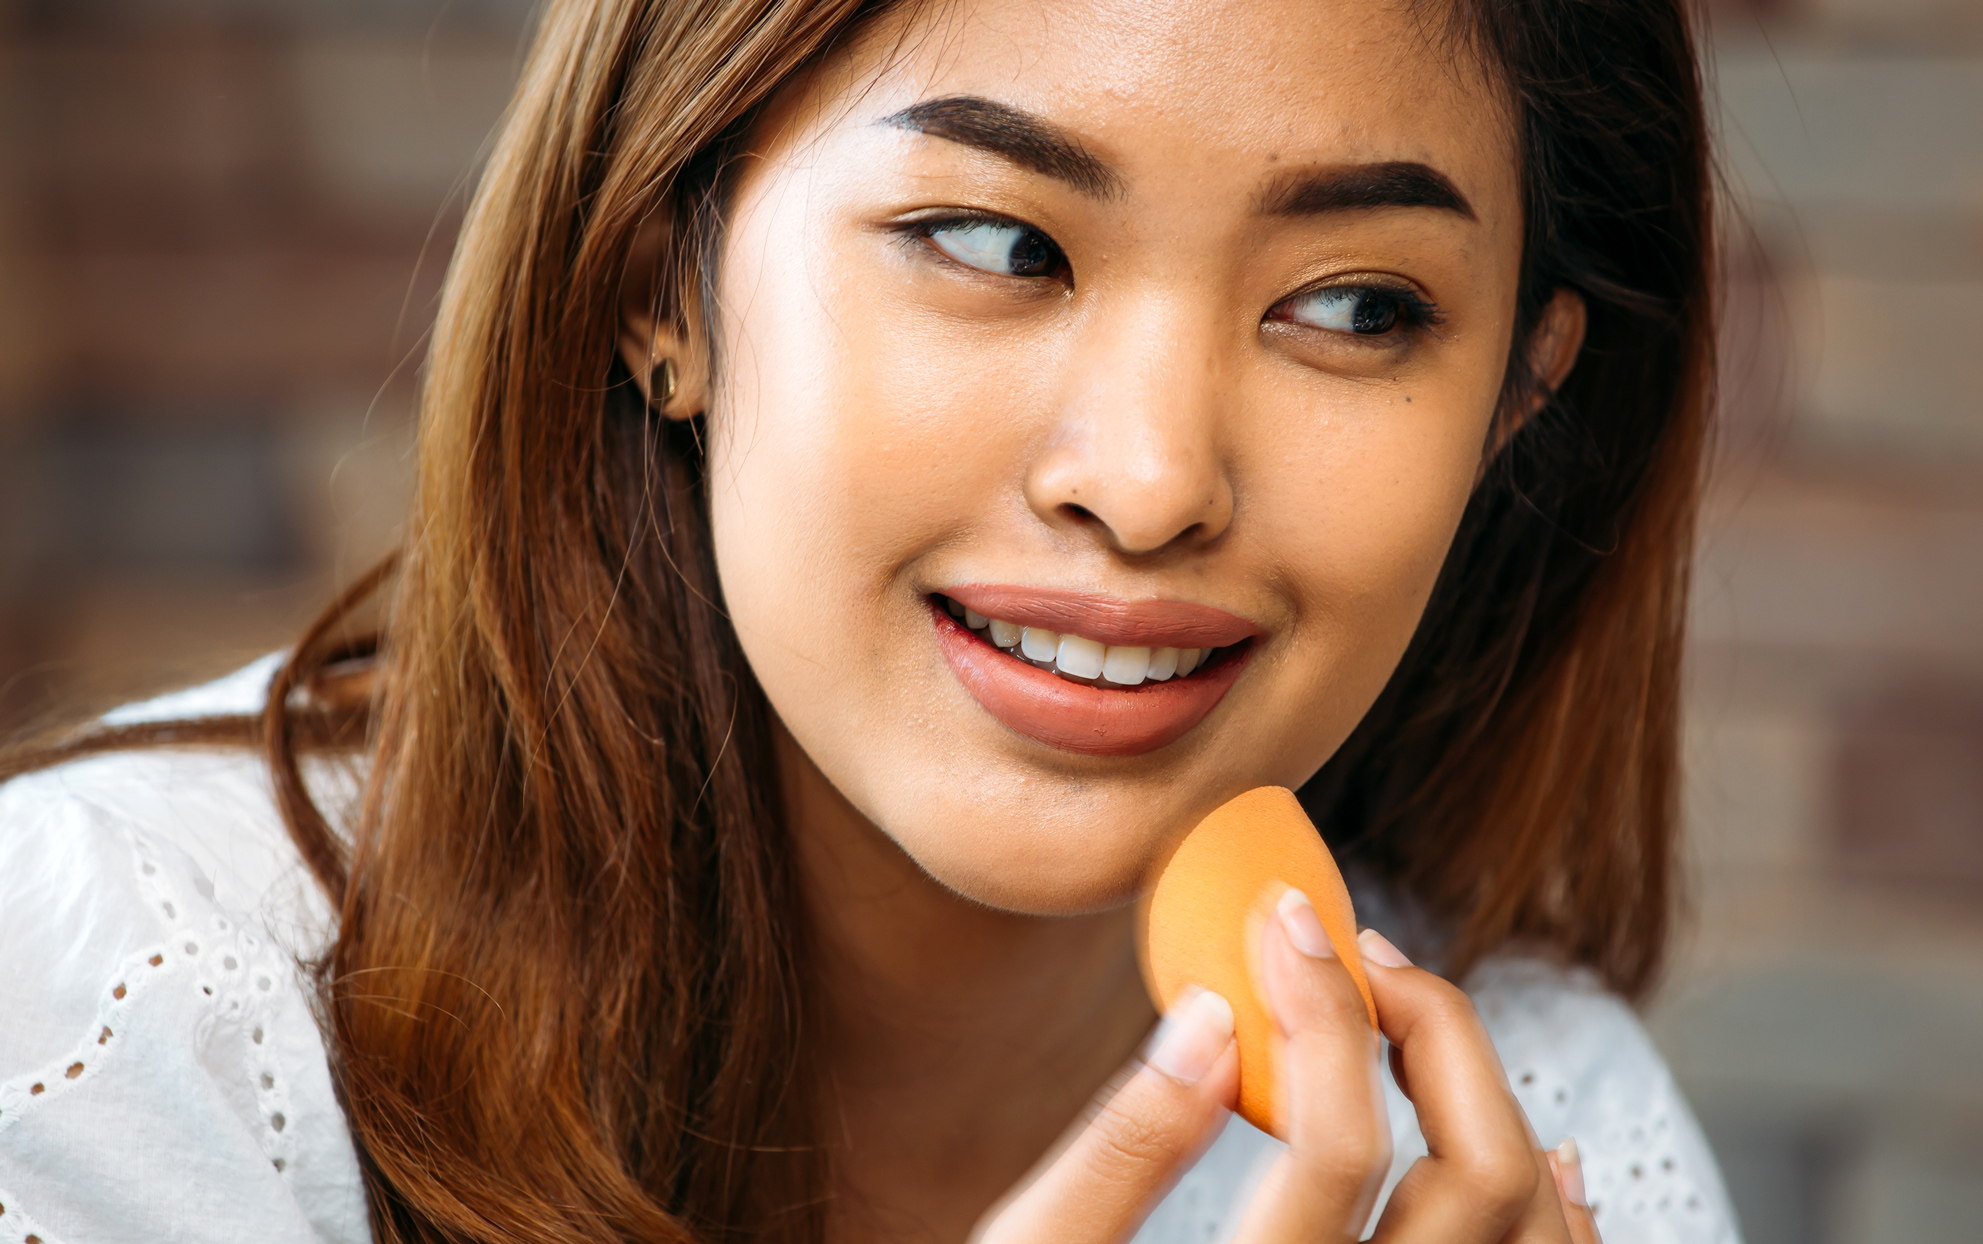 Asian woman applying make up with a foundation sponge